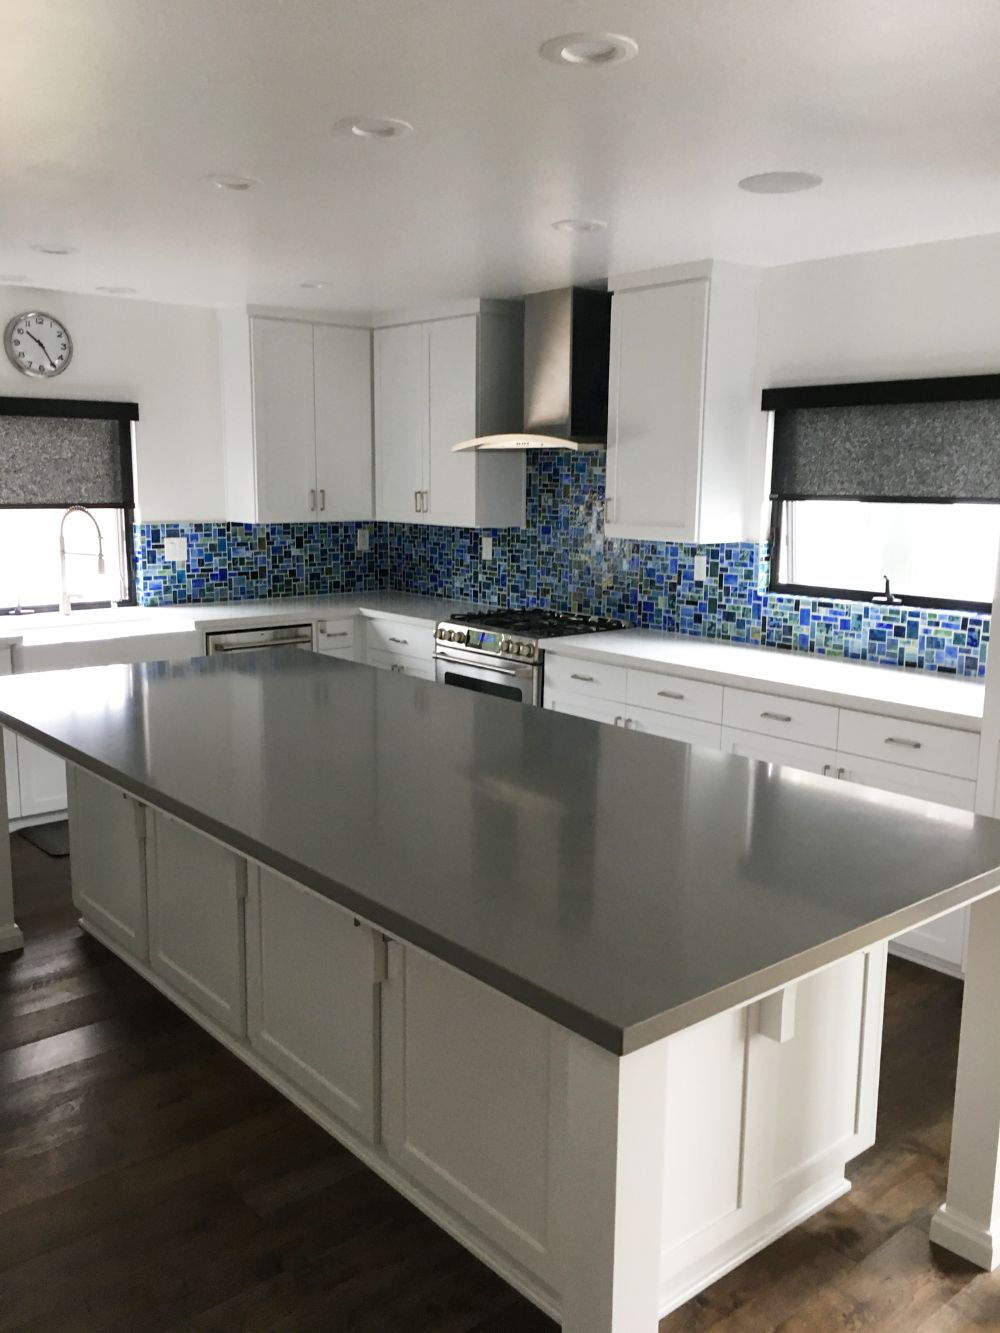 Tiffany inspired kitchen with beautiful greens and blues